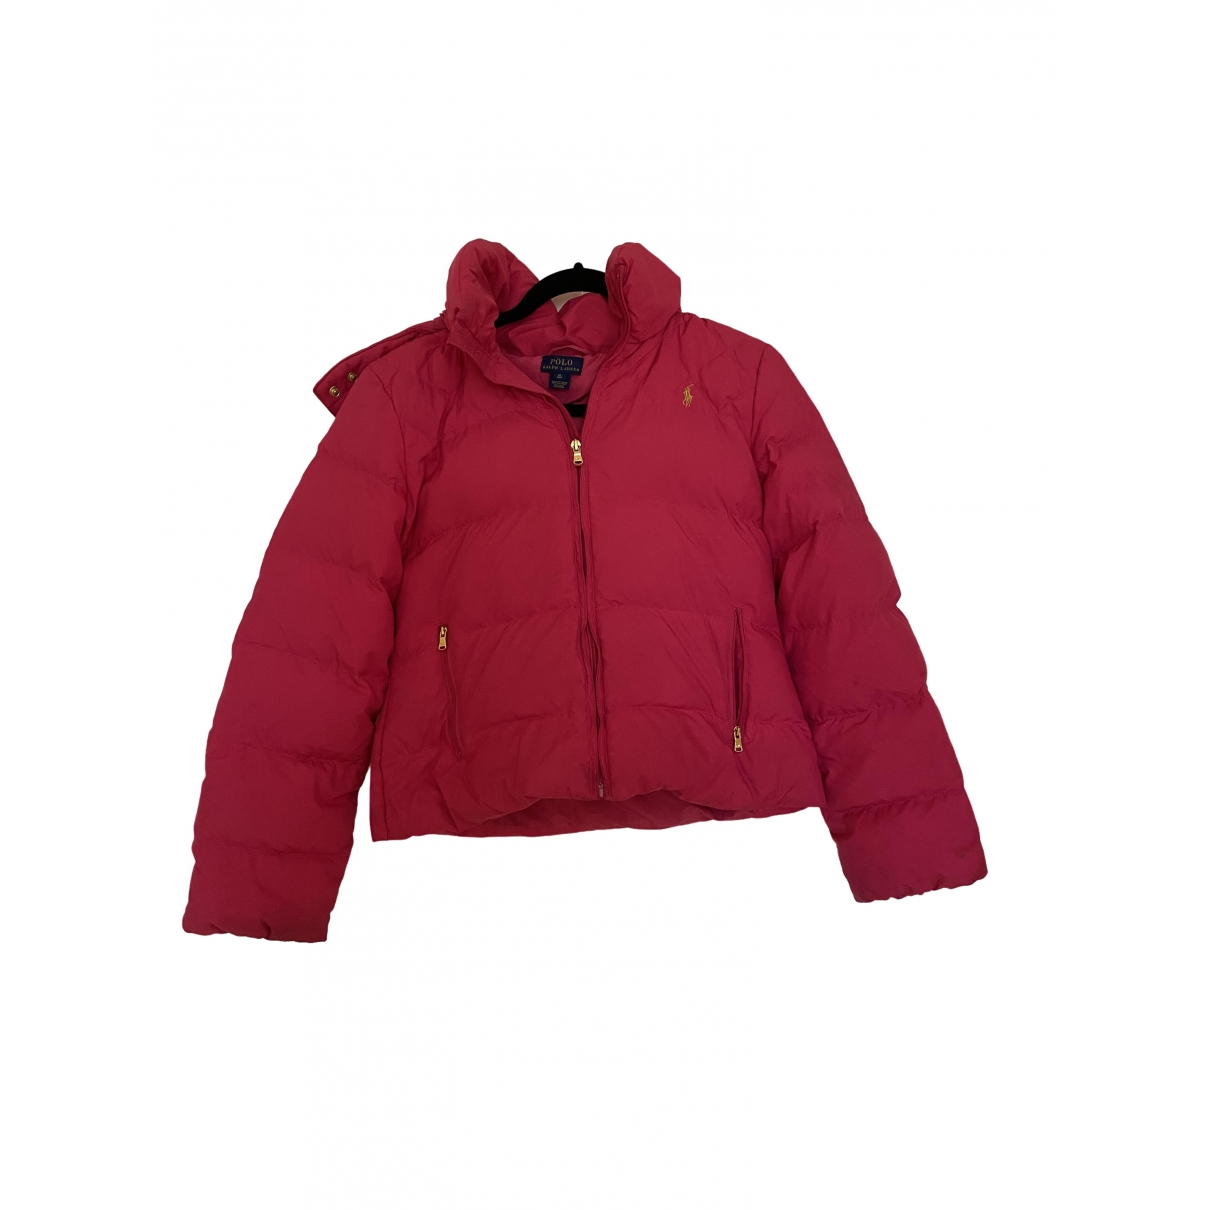 Polo Ralph Lauren \N Pink jacket & coat for Kids 16 years - M UK